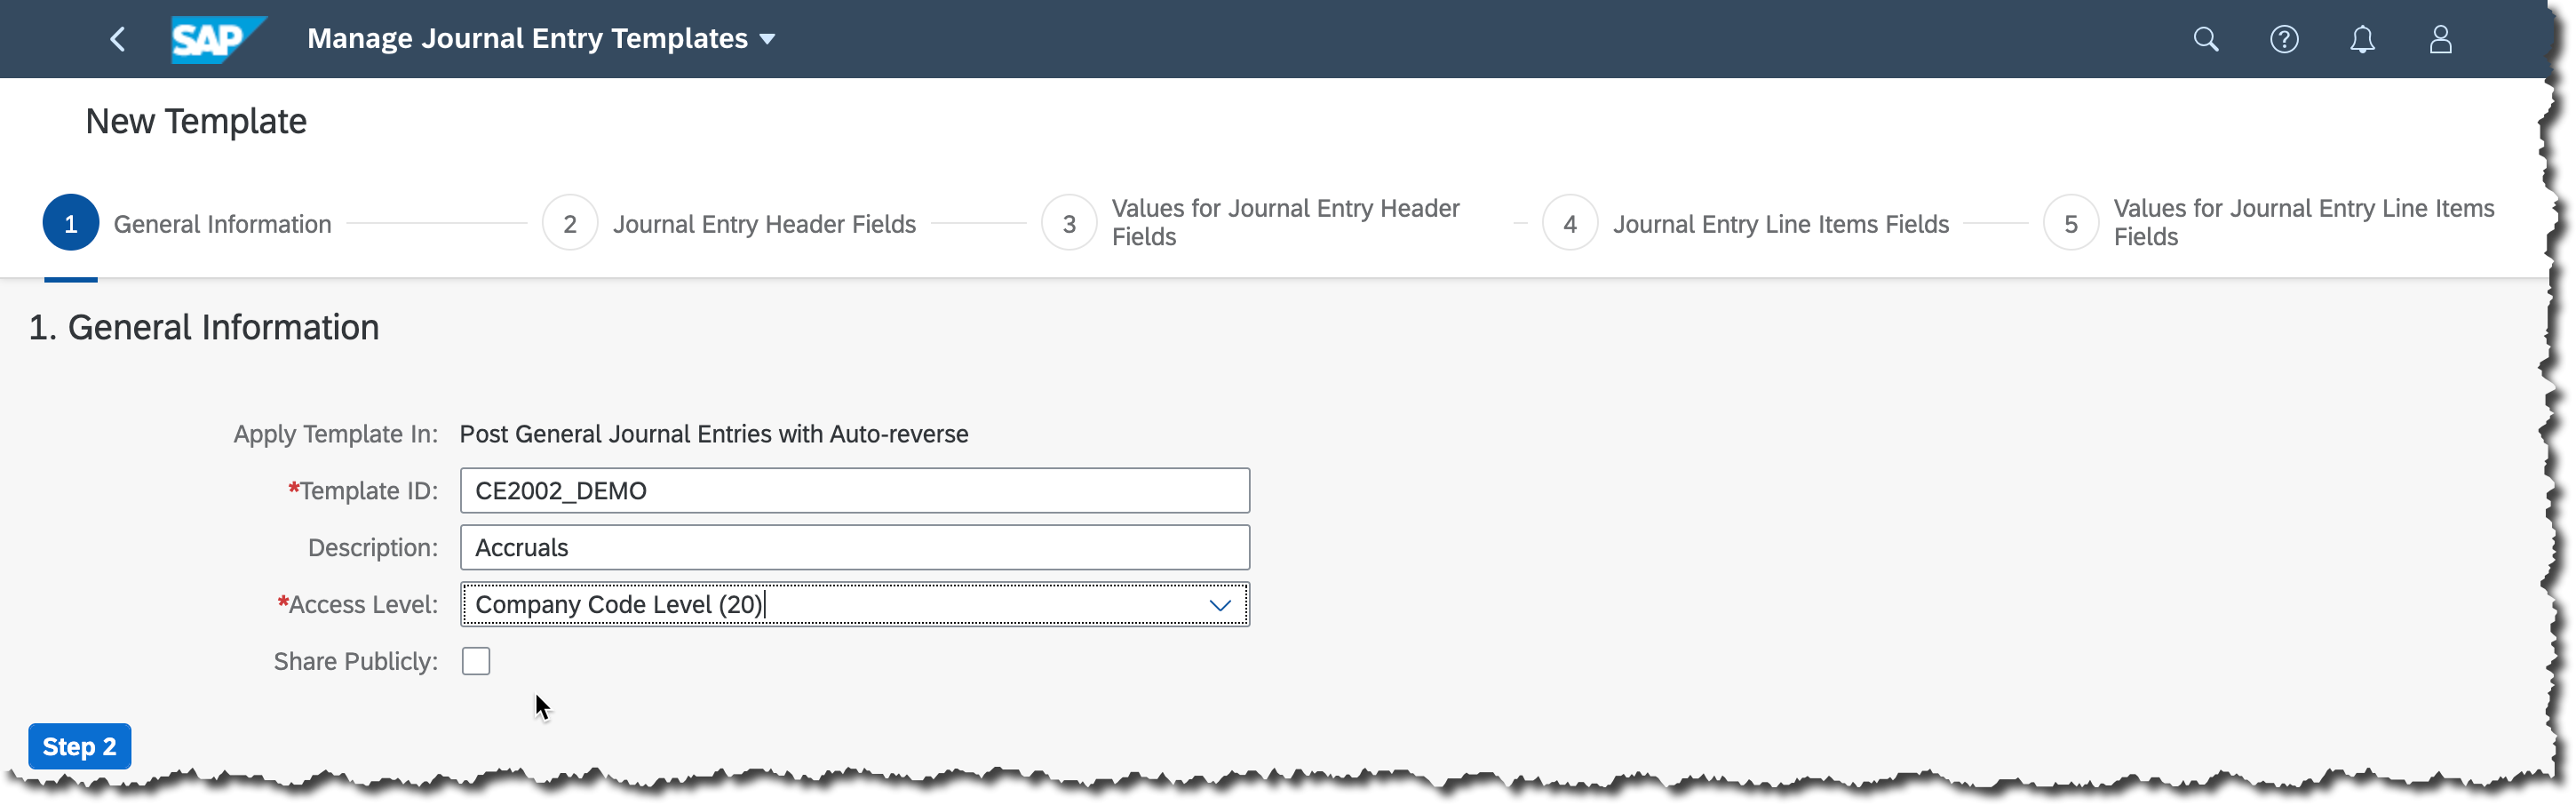 Manage Journal Entry Templates -2.png